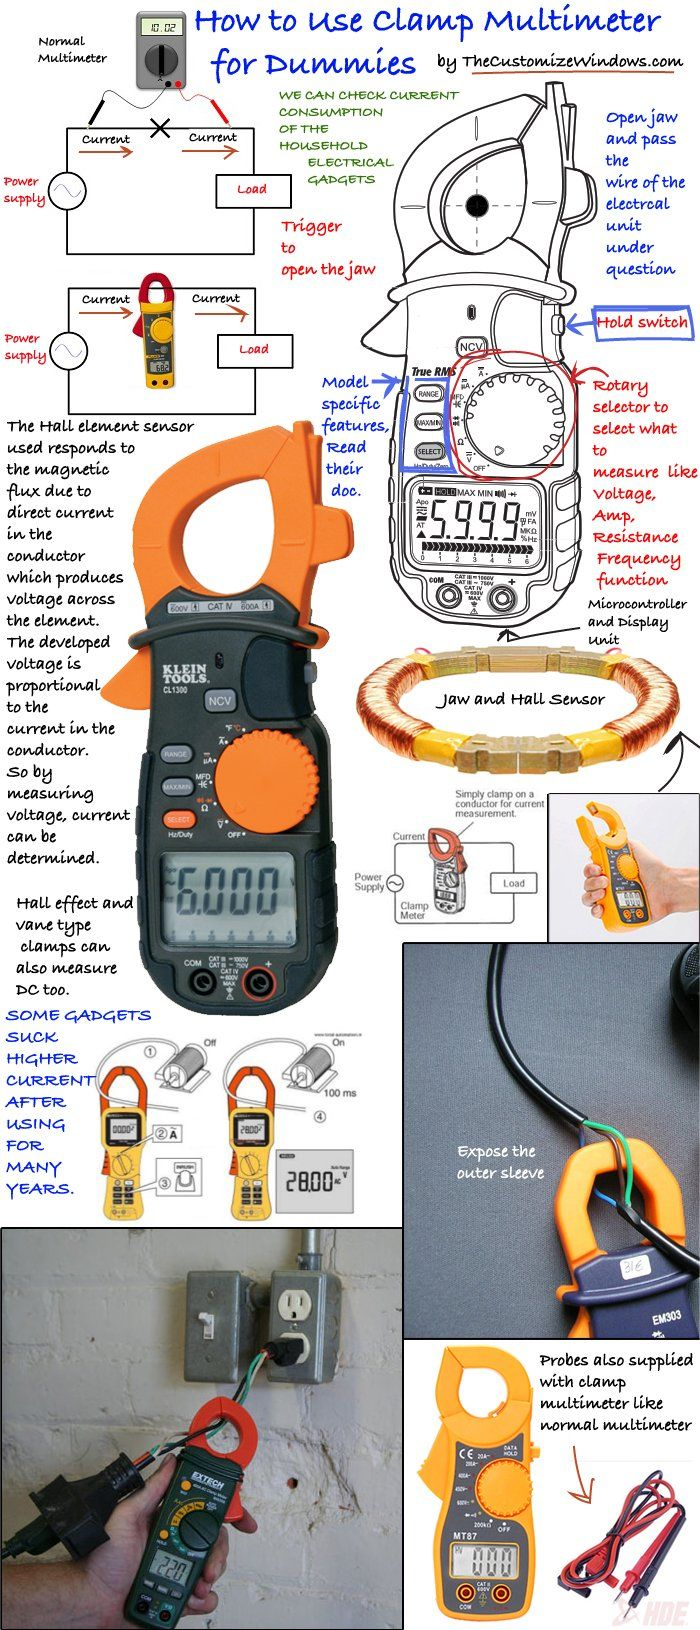 Clamp Multimeter : How To Use For Dummies | Electrical wiring ...